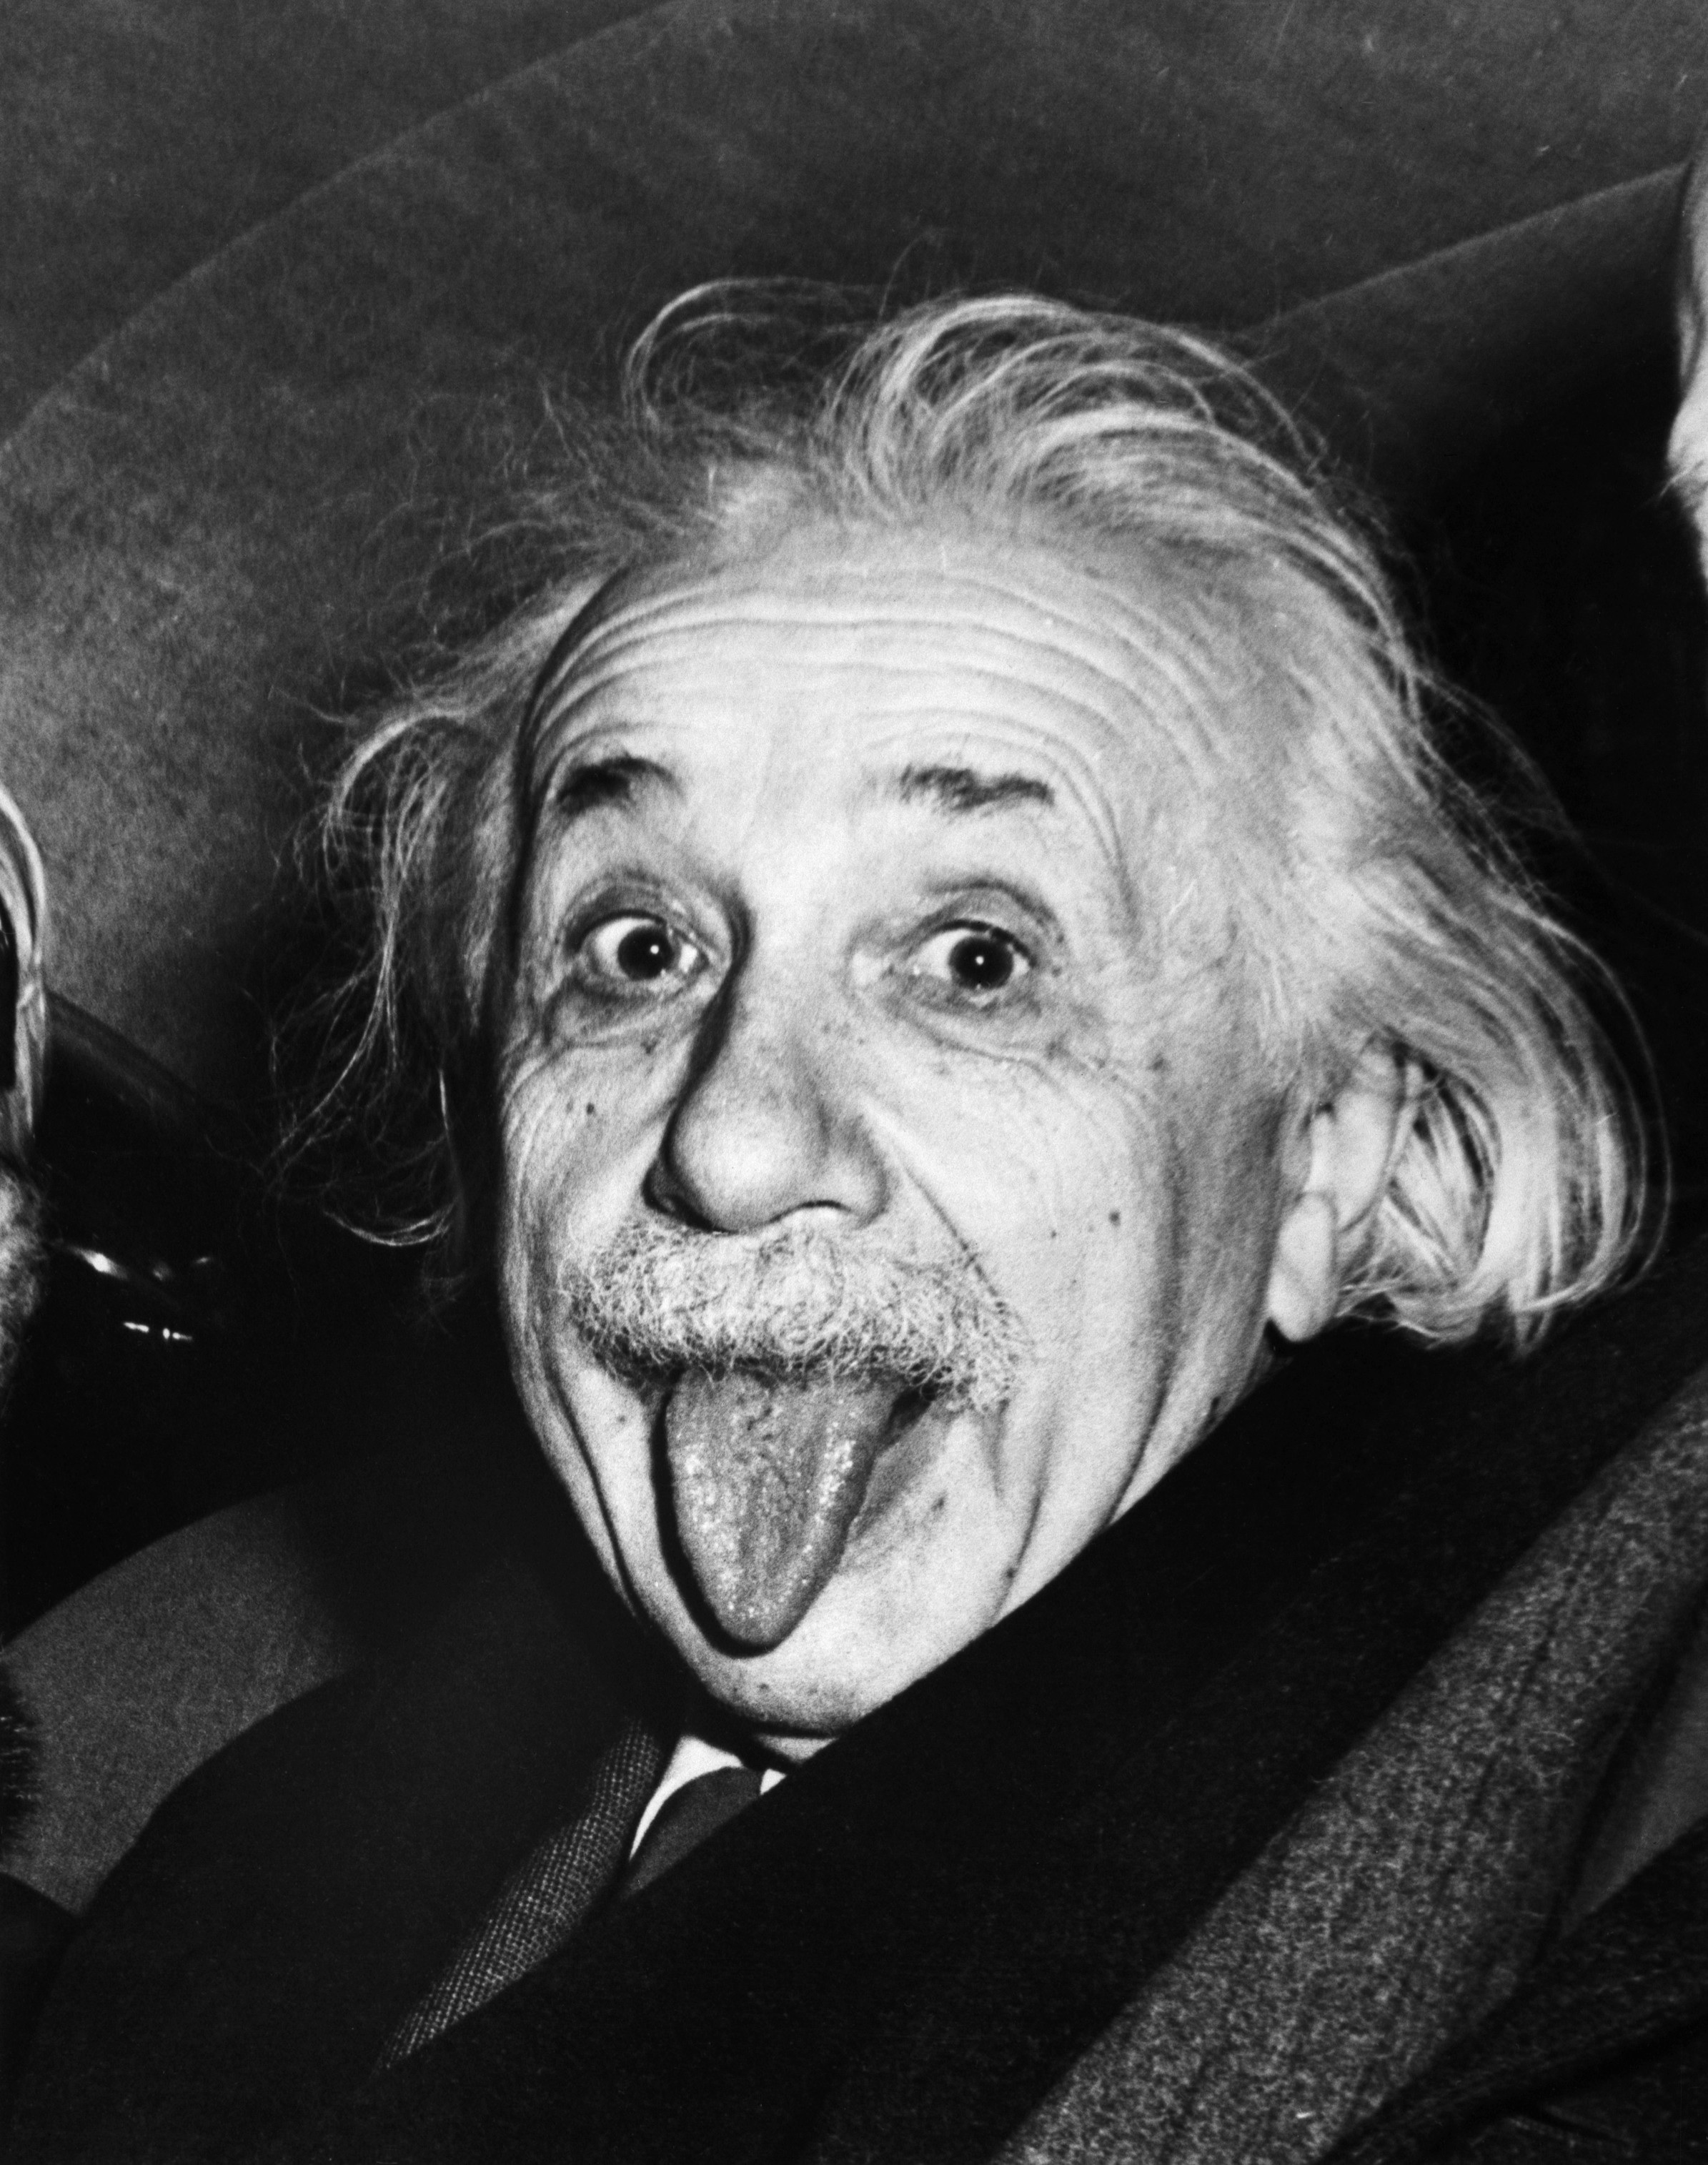 "Albert Einstein (14 March 1879 – 18 April 1955) was a German-born theoretical physicist. He developed the theory of relativity, one of the two pillars of modern physics (alongside quantum mechanics). Einstein's work is also known for its influence on the philosophy of science. Einstein is best known in popular culture for his mass–energy equivalence formula E = mc2 (which has been dubbed ""the world's most famous equation""). He received the 1921 Nobel Prize in Physics ""for his services to theoretical physics, and especially for his discovery of the law of the photoelectric effect"", a pivotal step in the evolution of quantum theory."